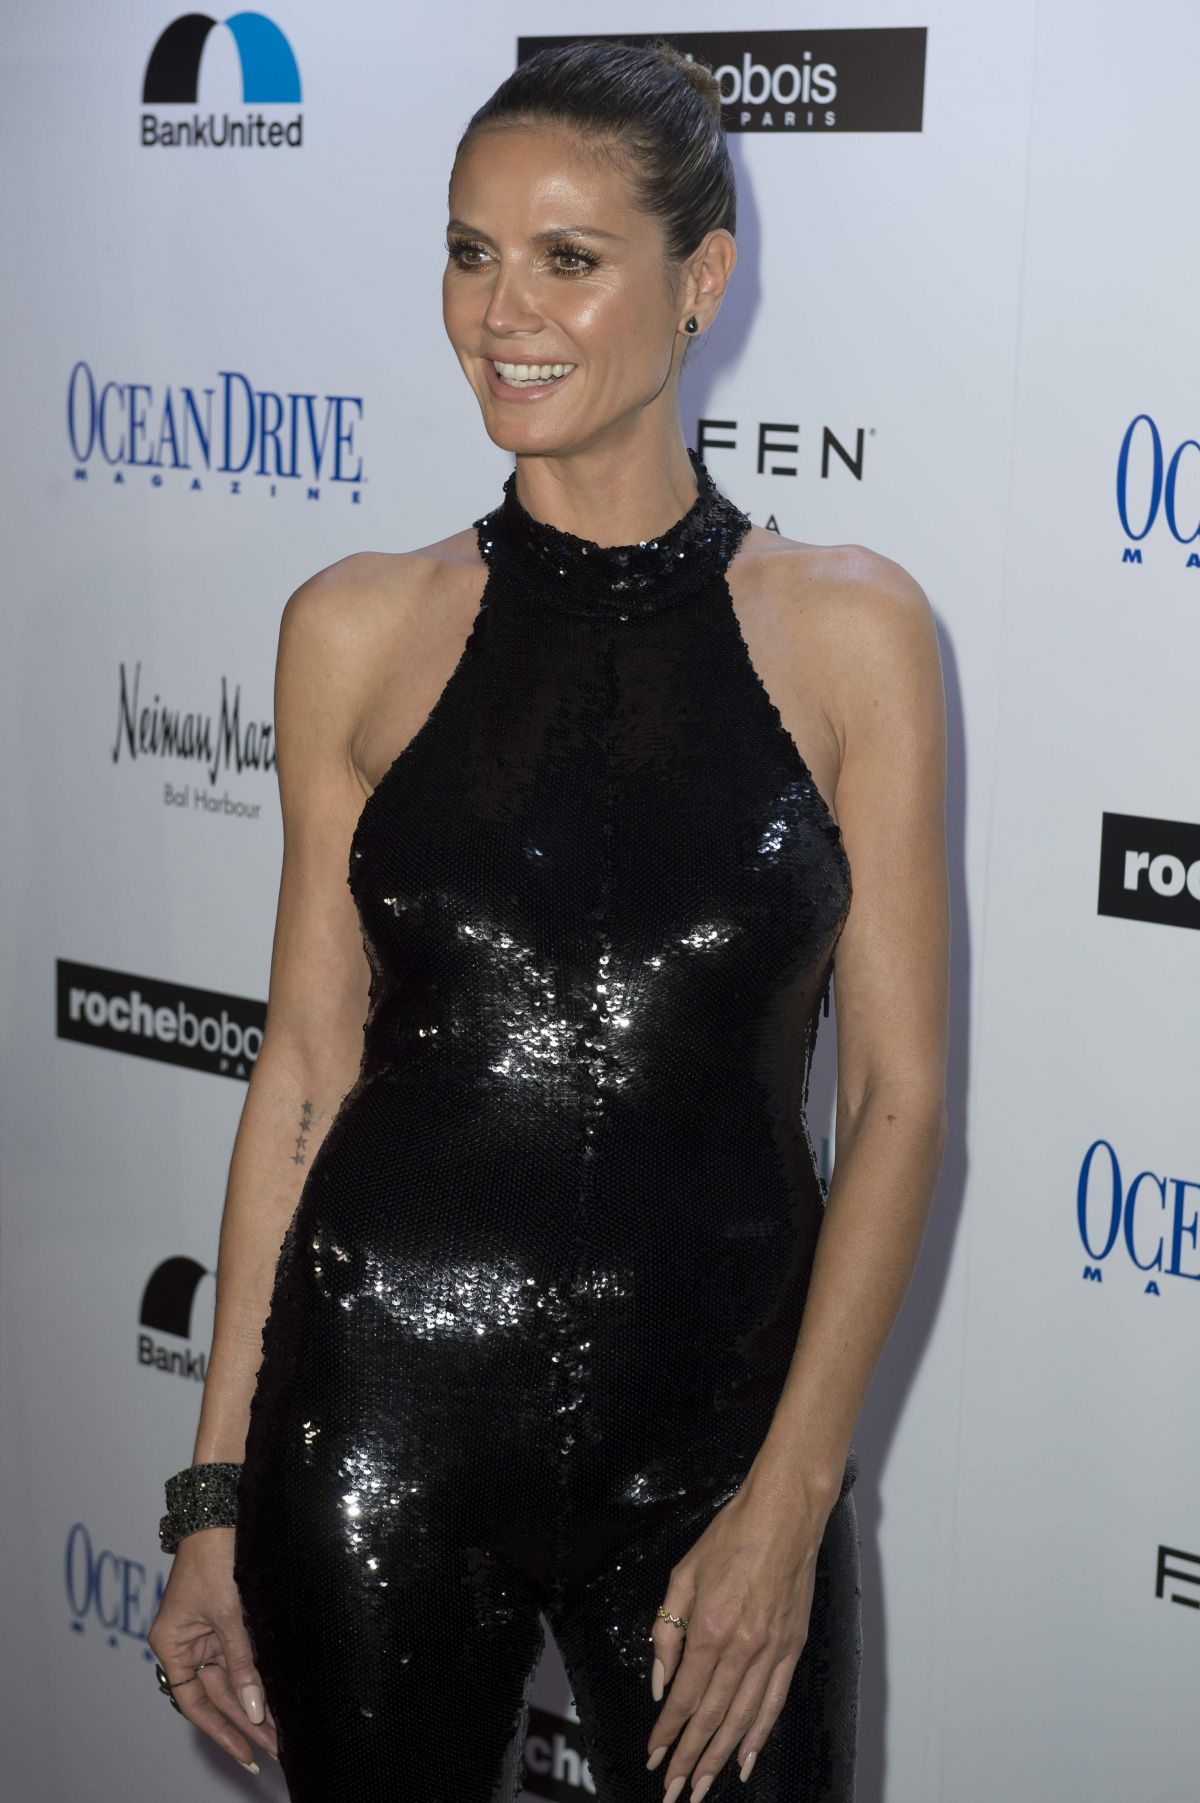 HEIDI KLUM at Ocean Drive Magazine December Issuce Cover Party in ...